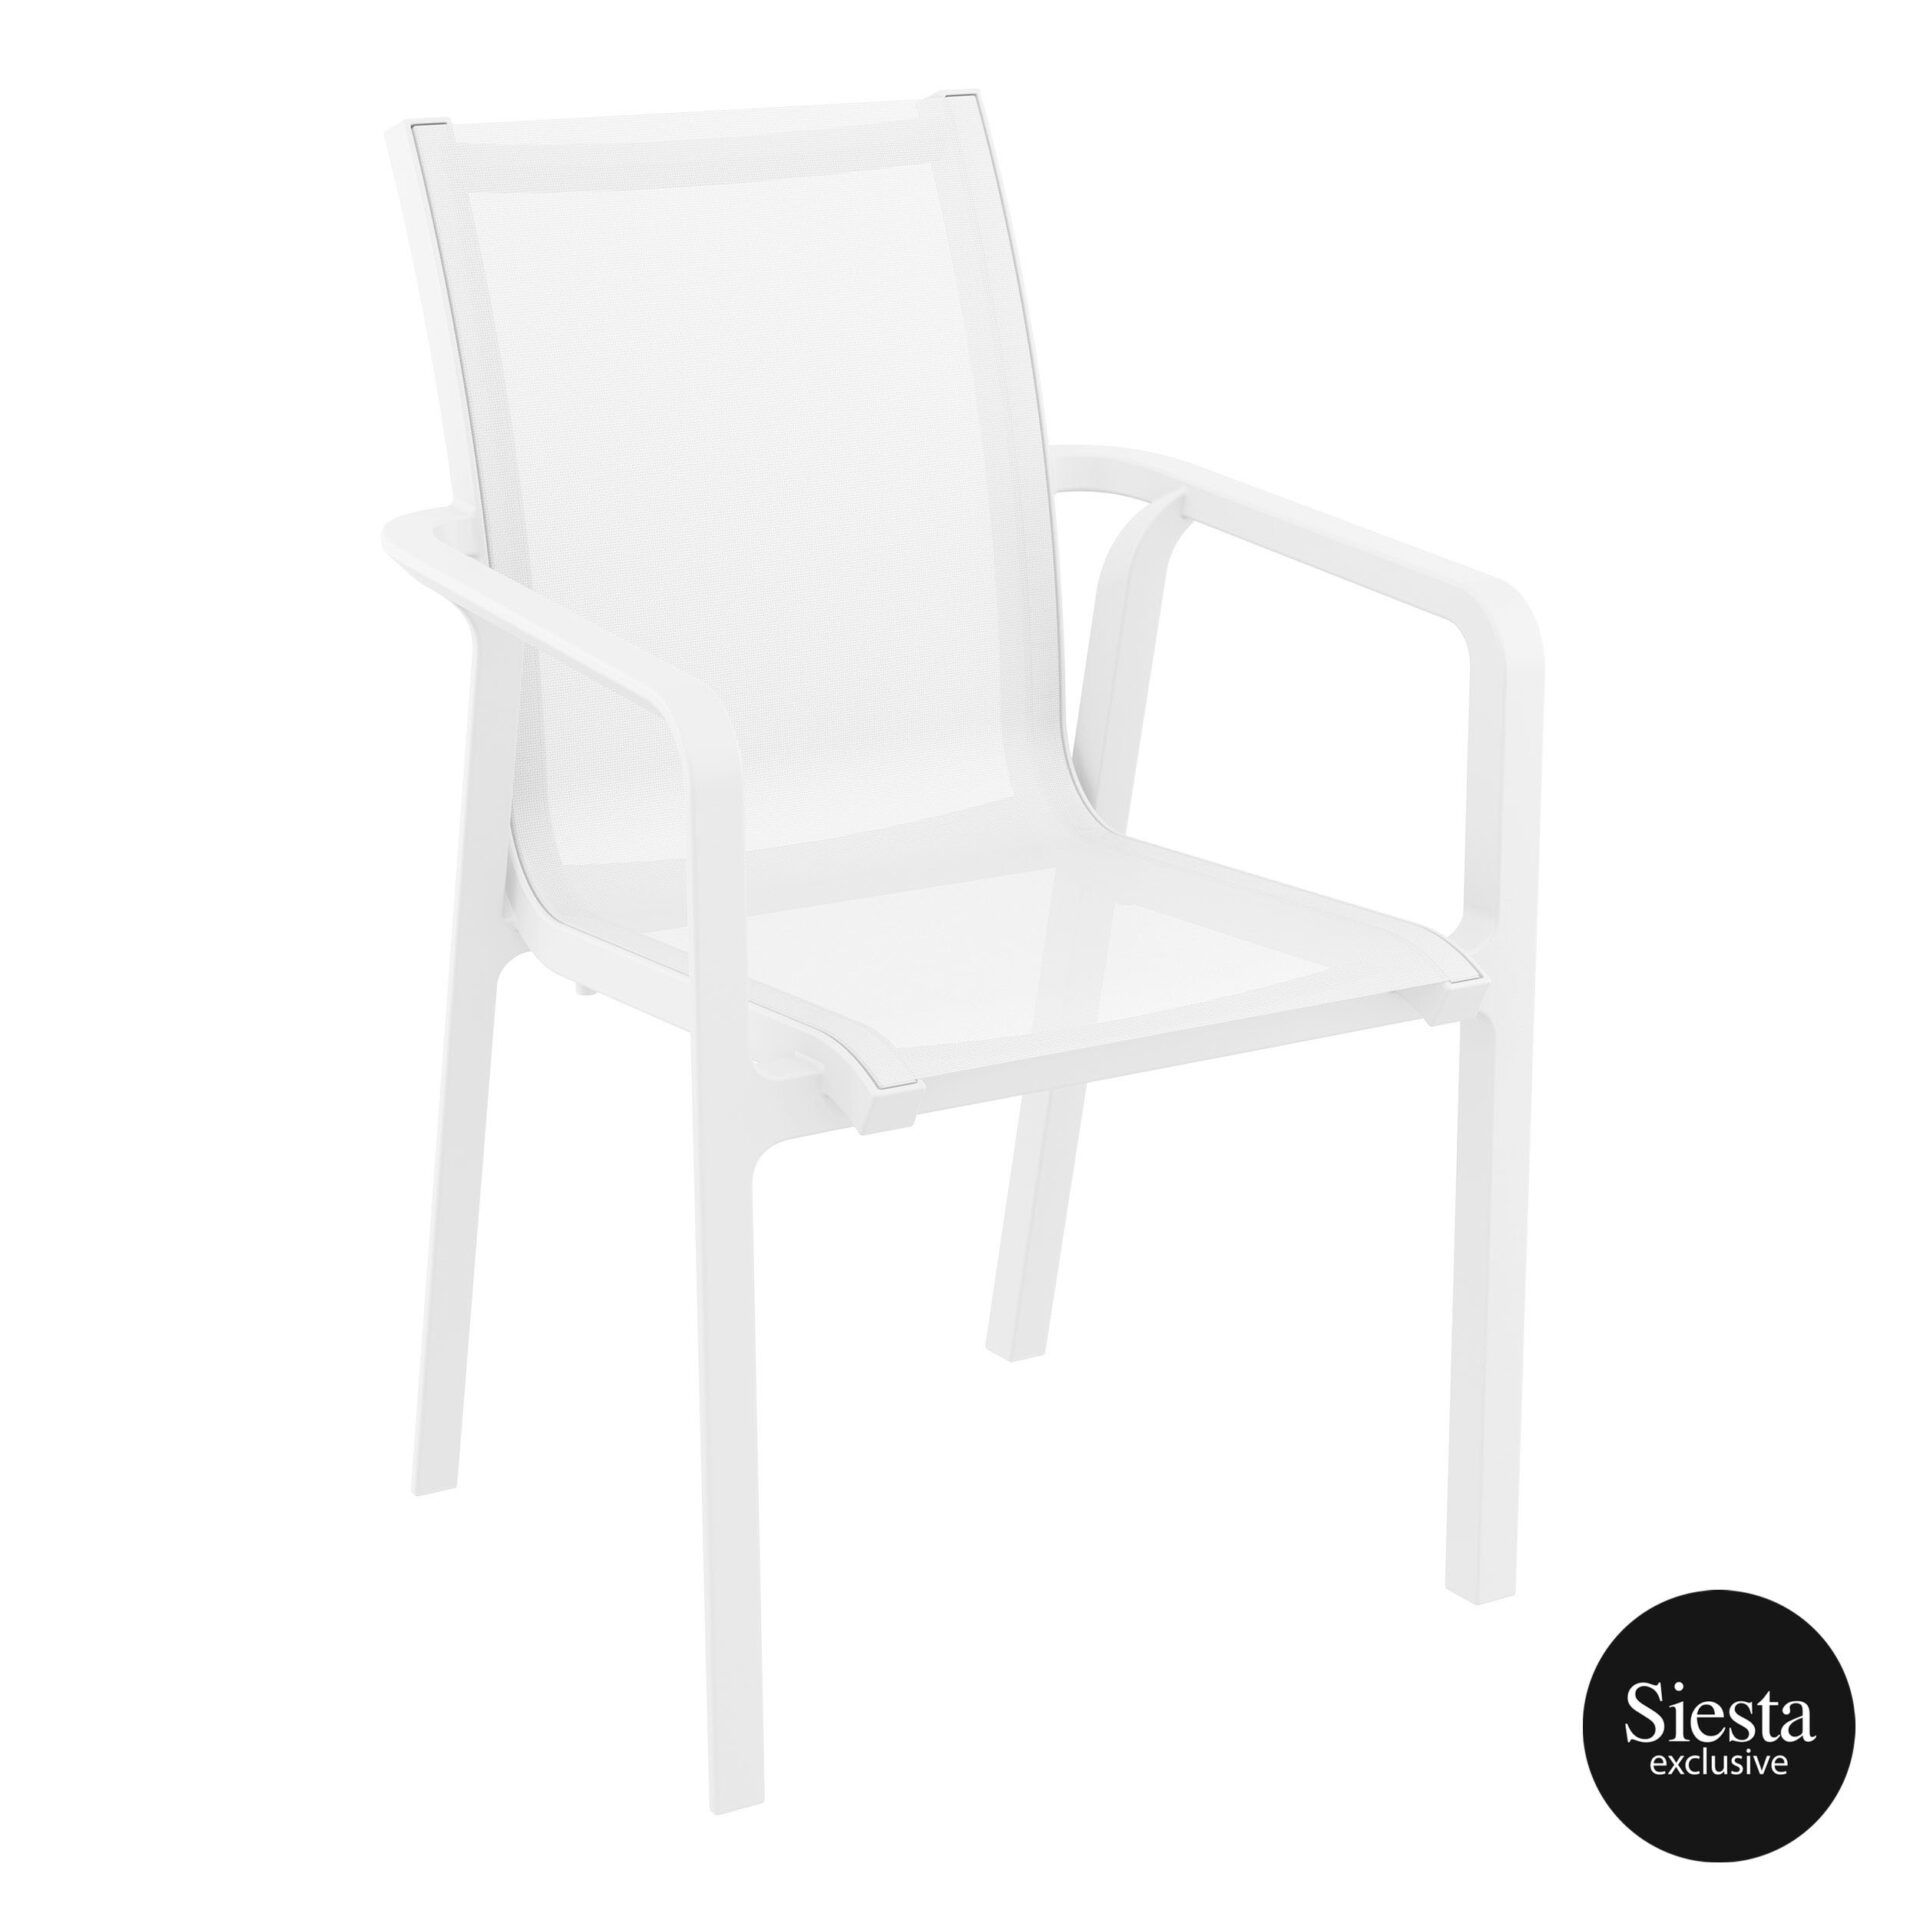 Outdoor Seating Pacific Armchair white white front side